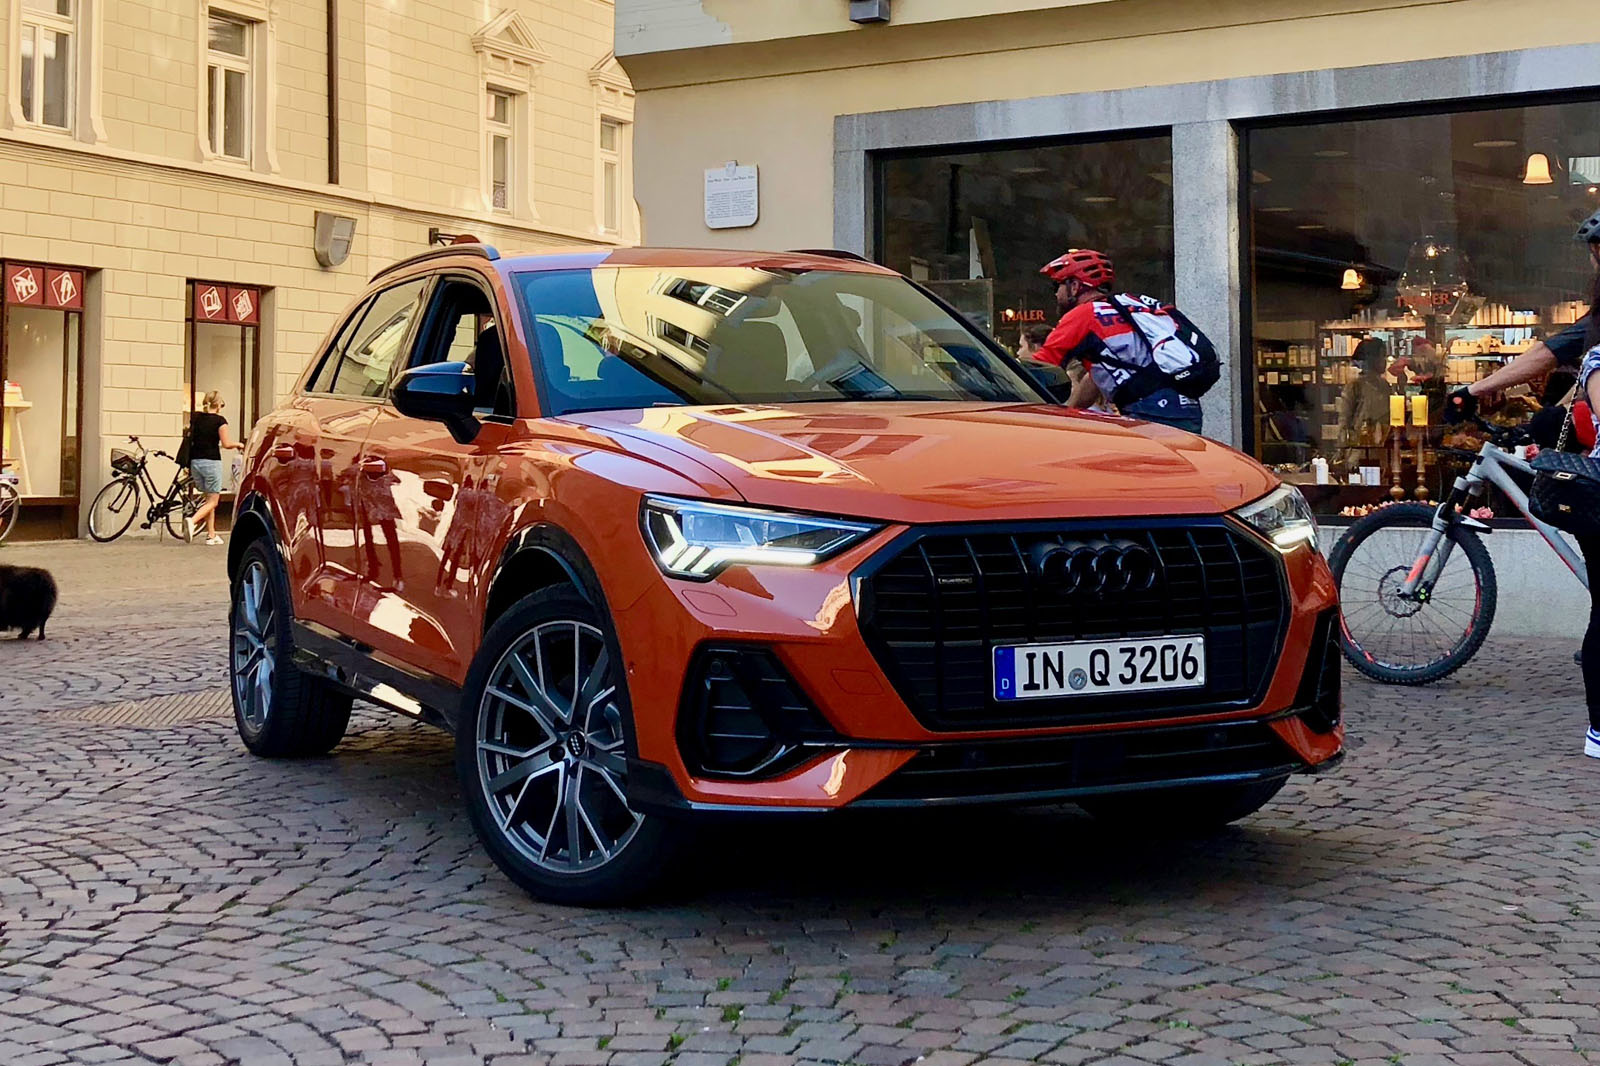 2019 Audi Q3 Grey - Audi Cars Review Release Raiacars.com